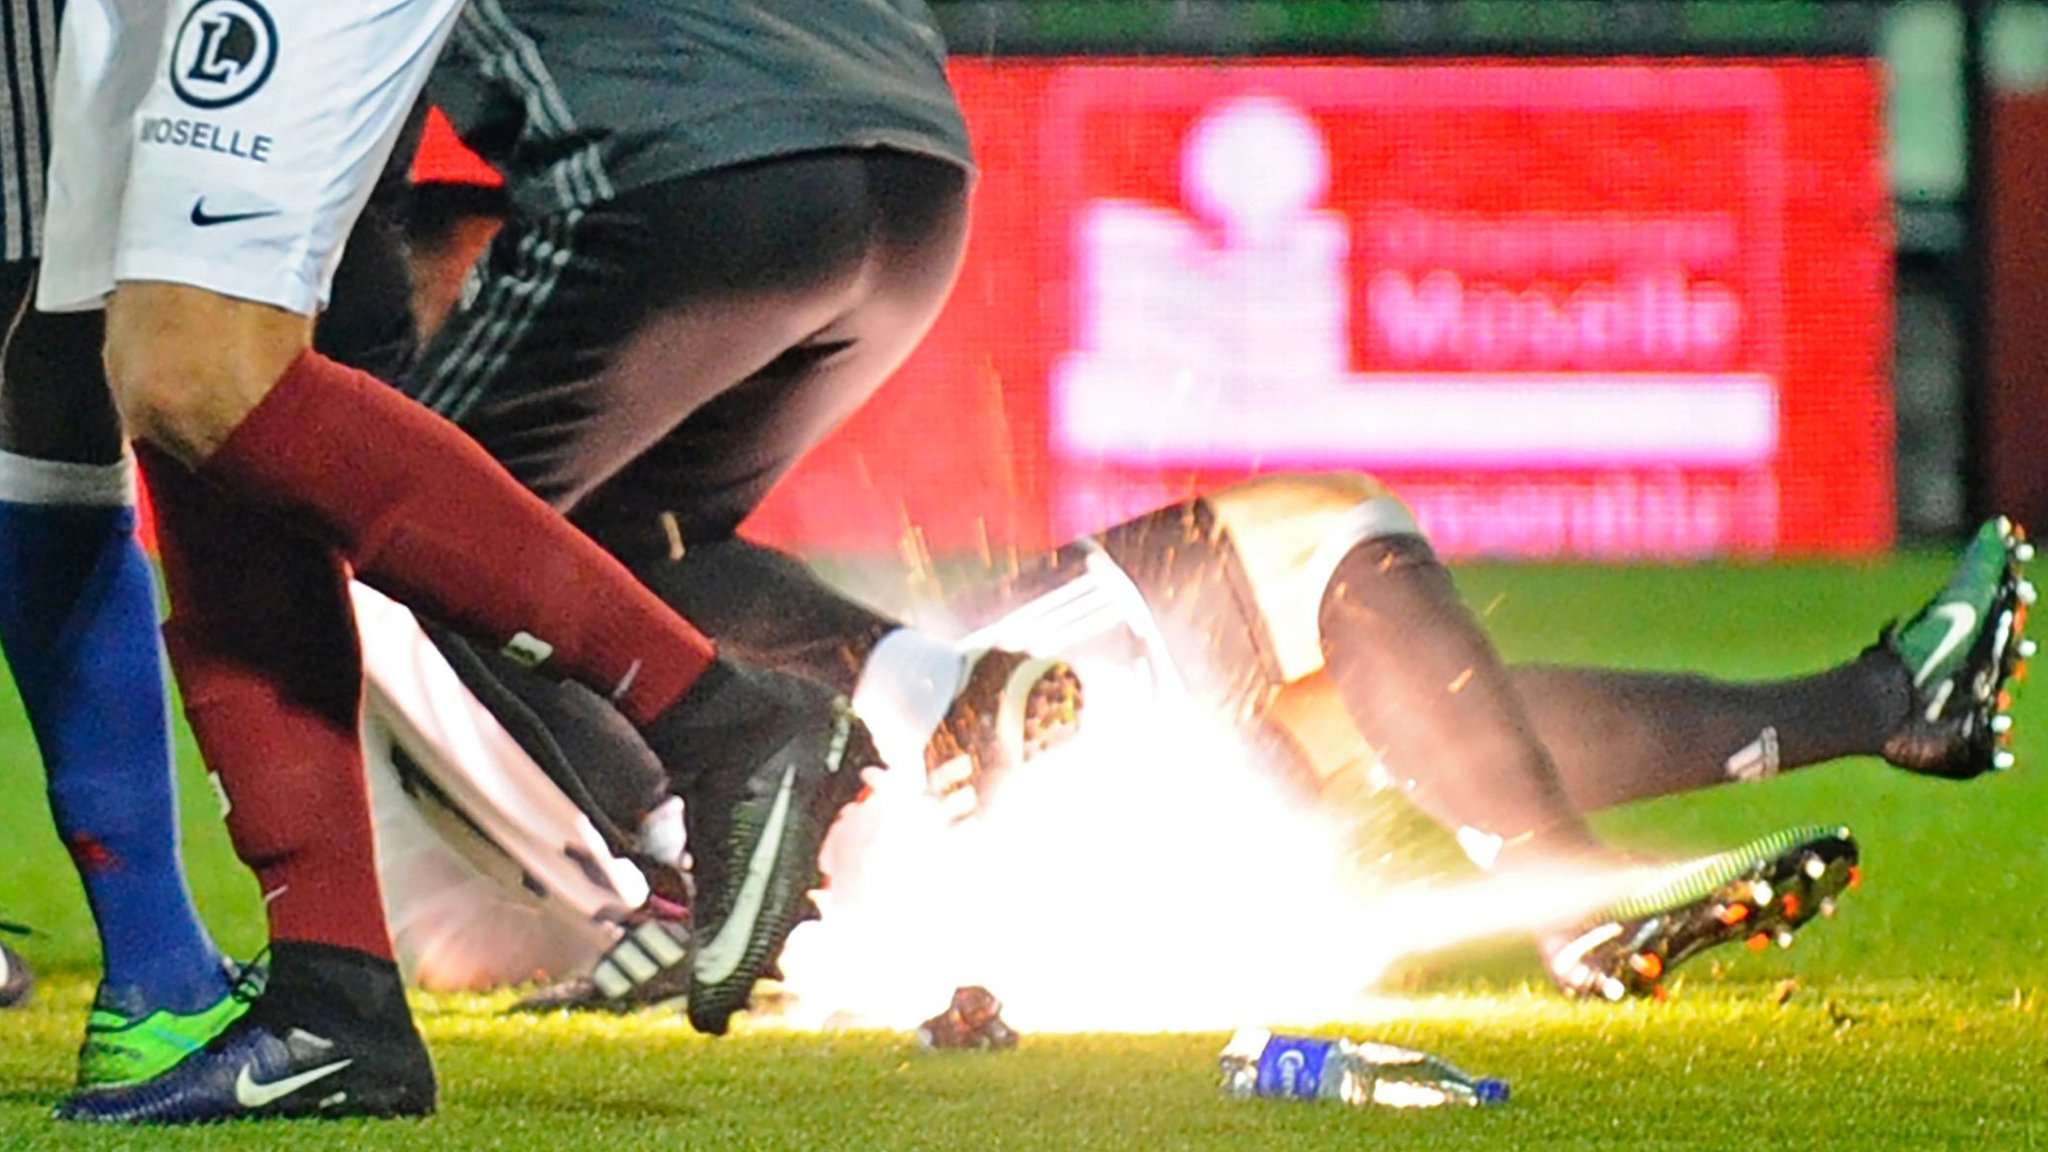 French game off after firecrackers thrown at keeper